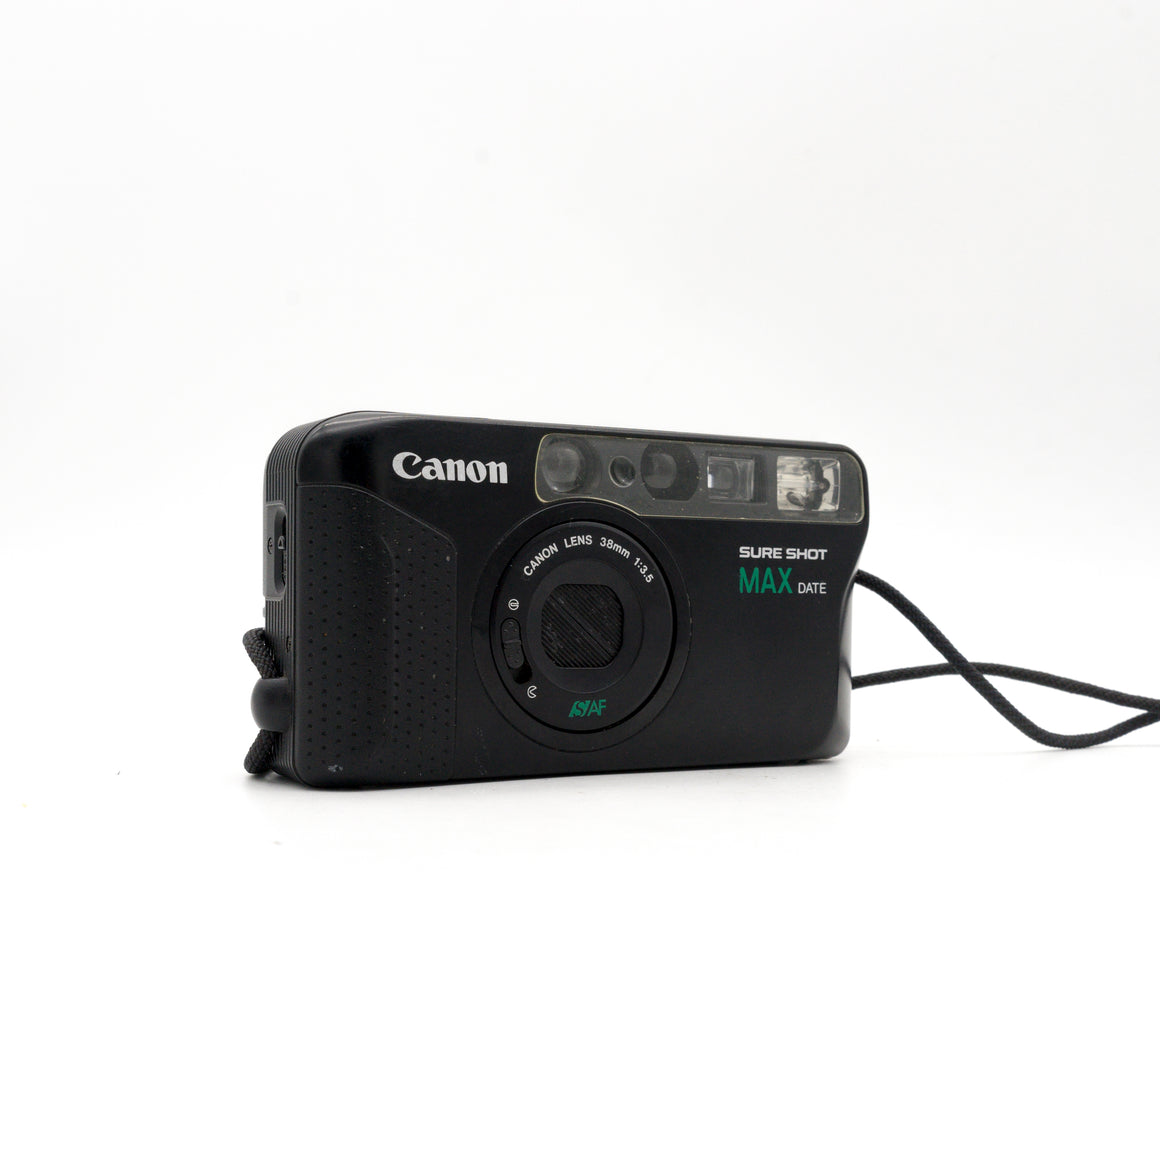 Canon Sure shot Max date Point & Shoot Camera with 38mm f3.5